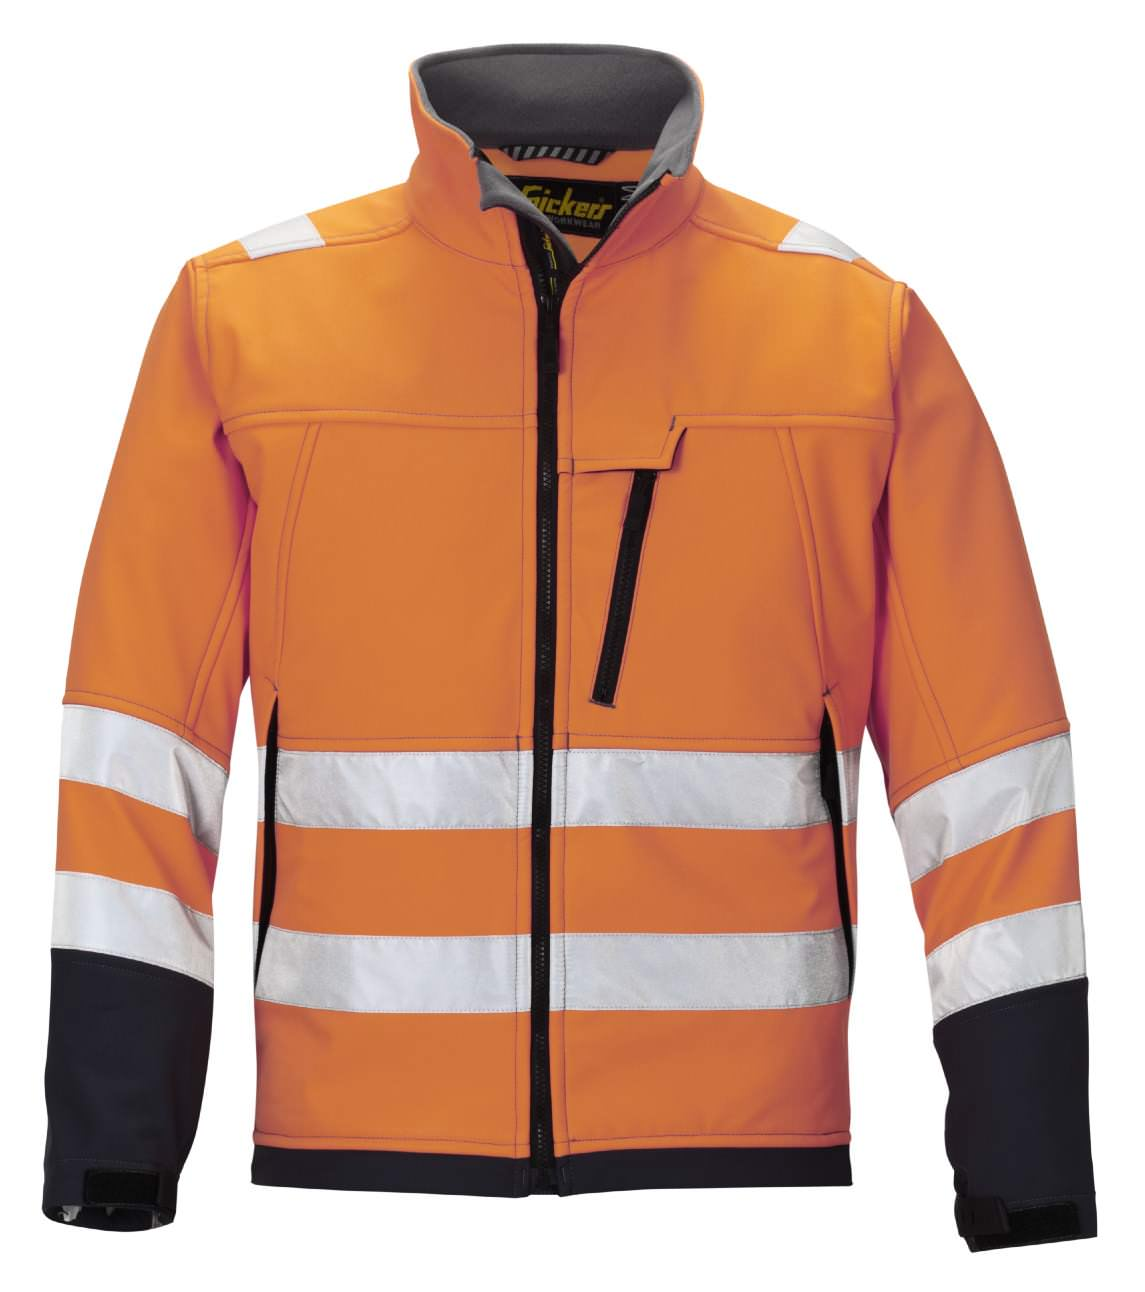 Snickers 1213 High-Vis Soft Shell Jacket, Class 3